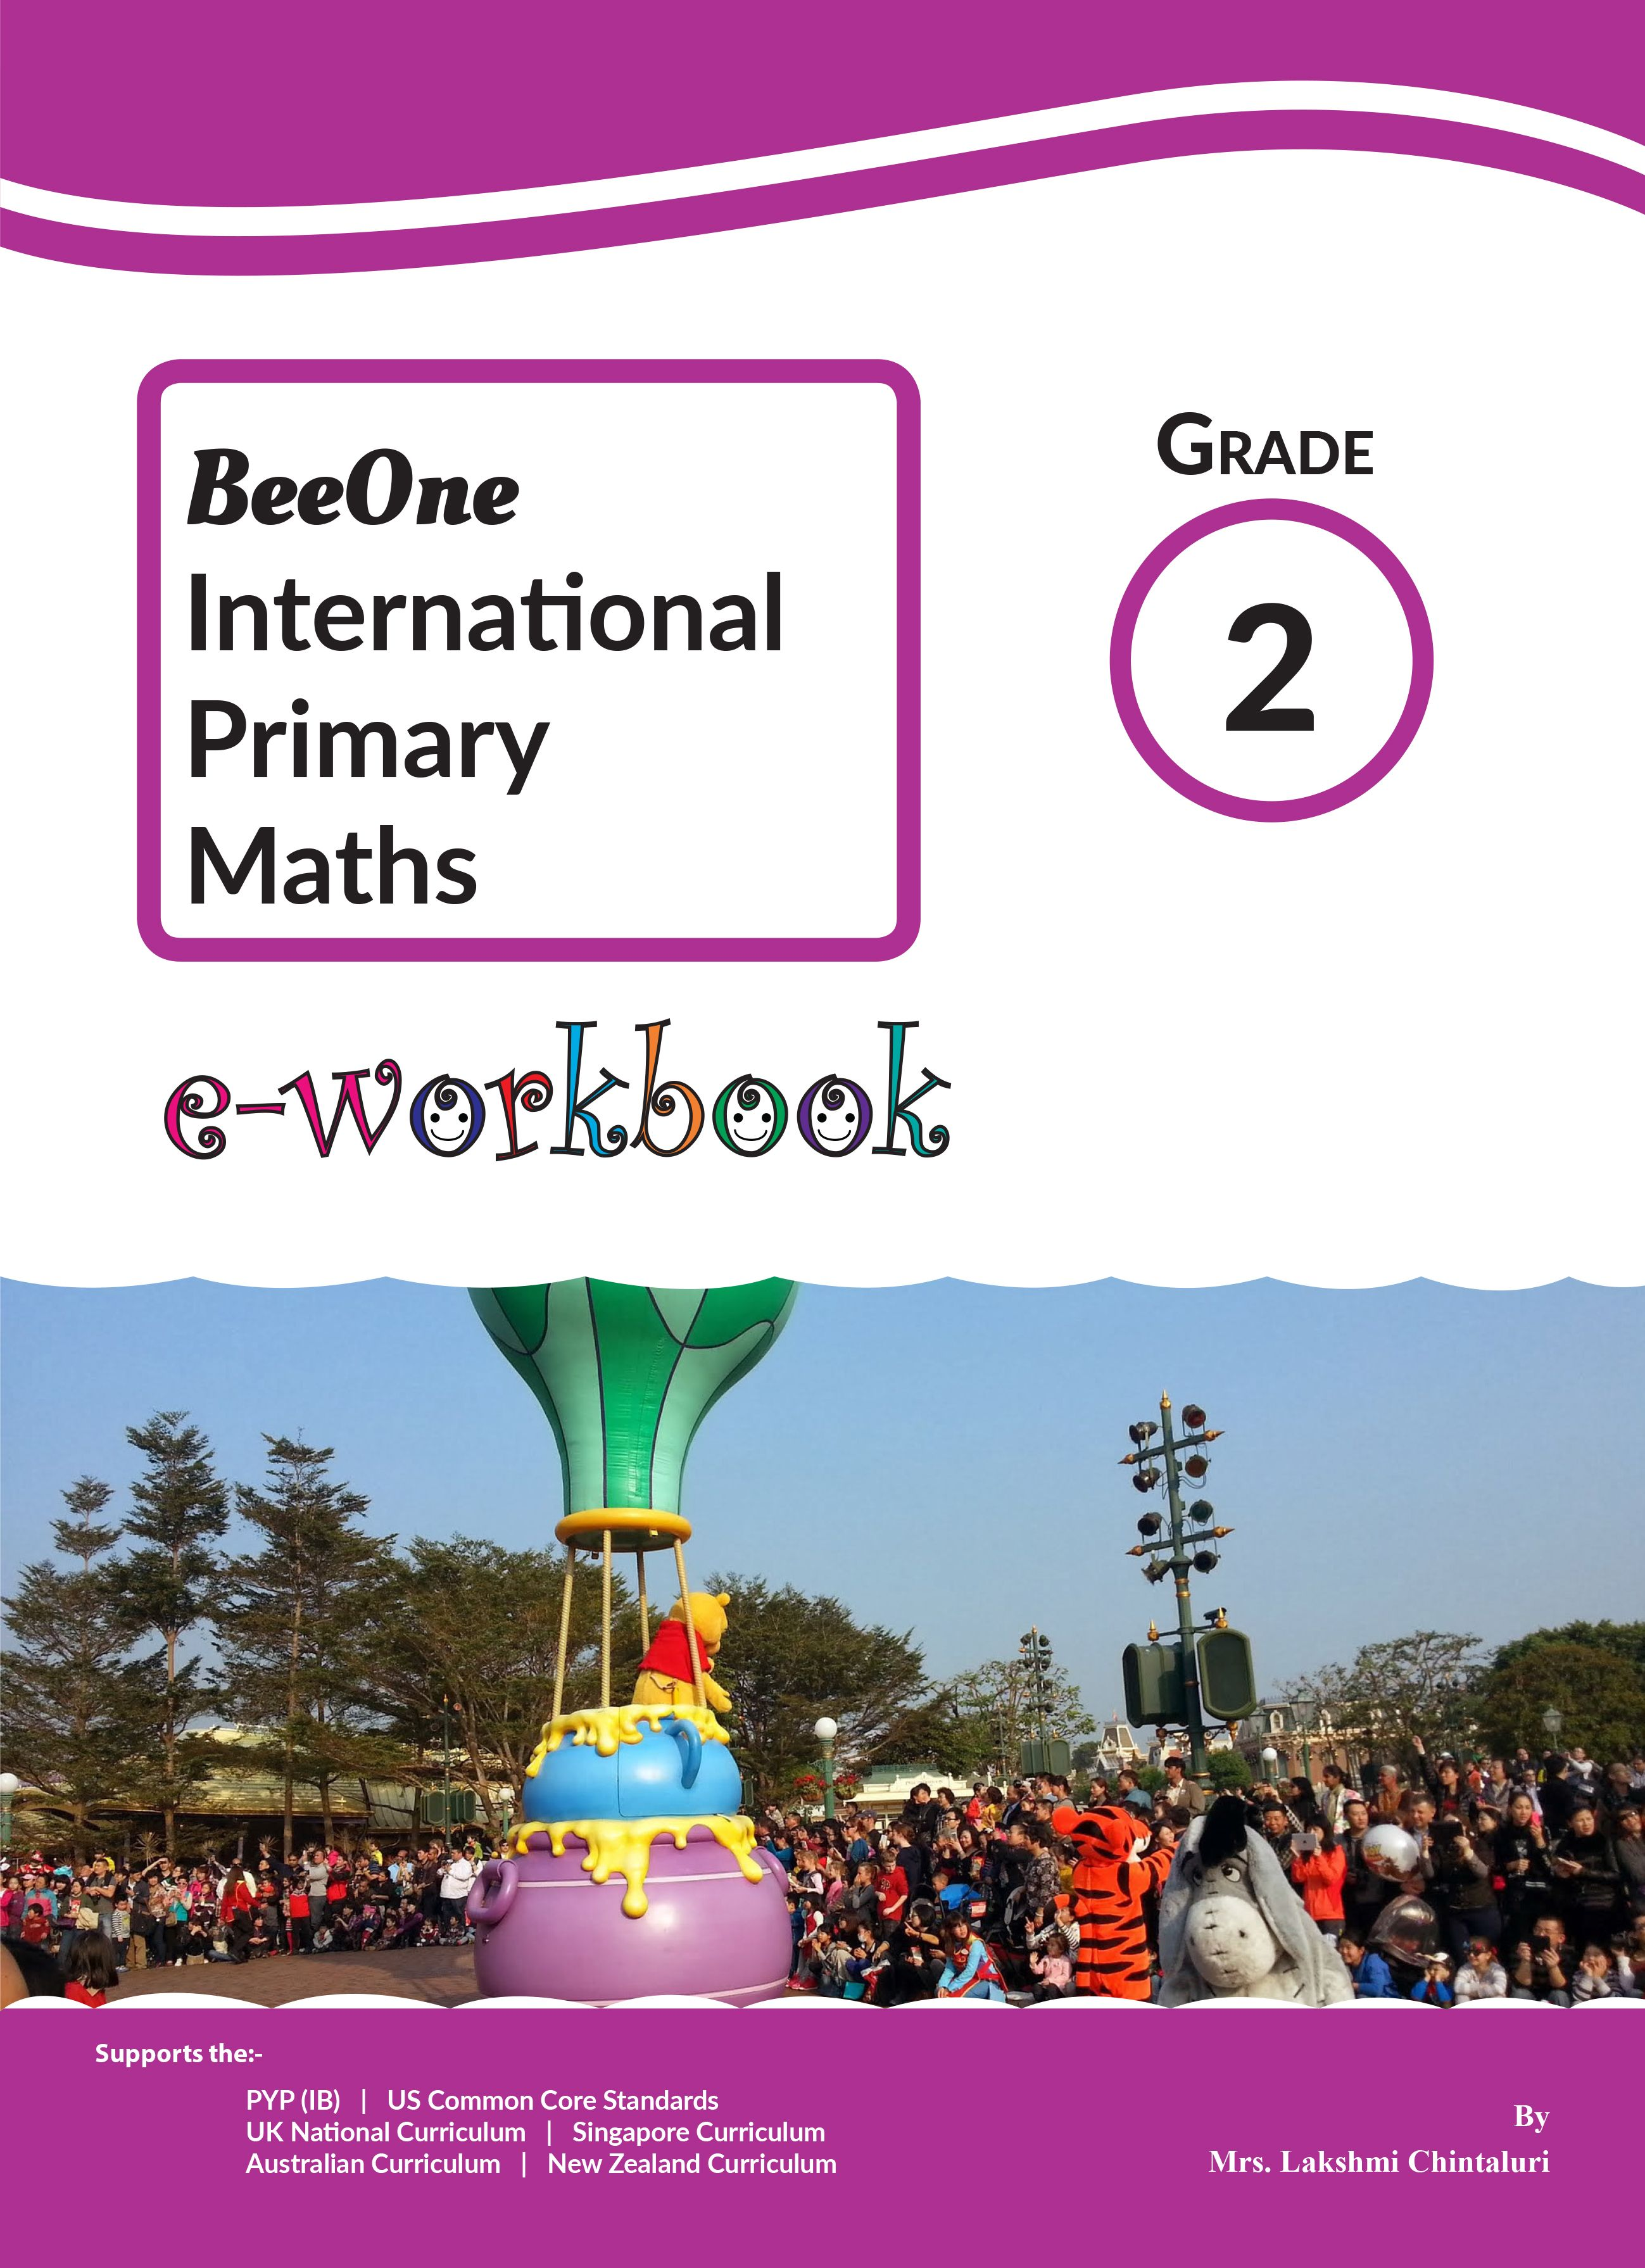 Grade 2 Math Worksheets Workbook Of 383 Pages For 5